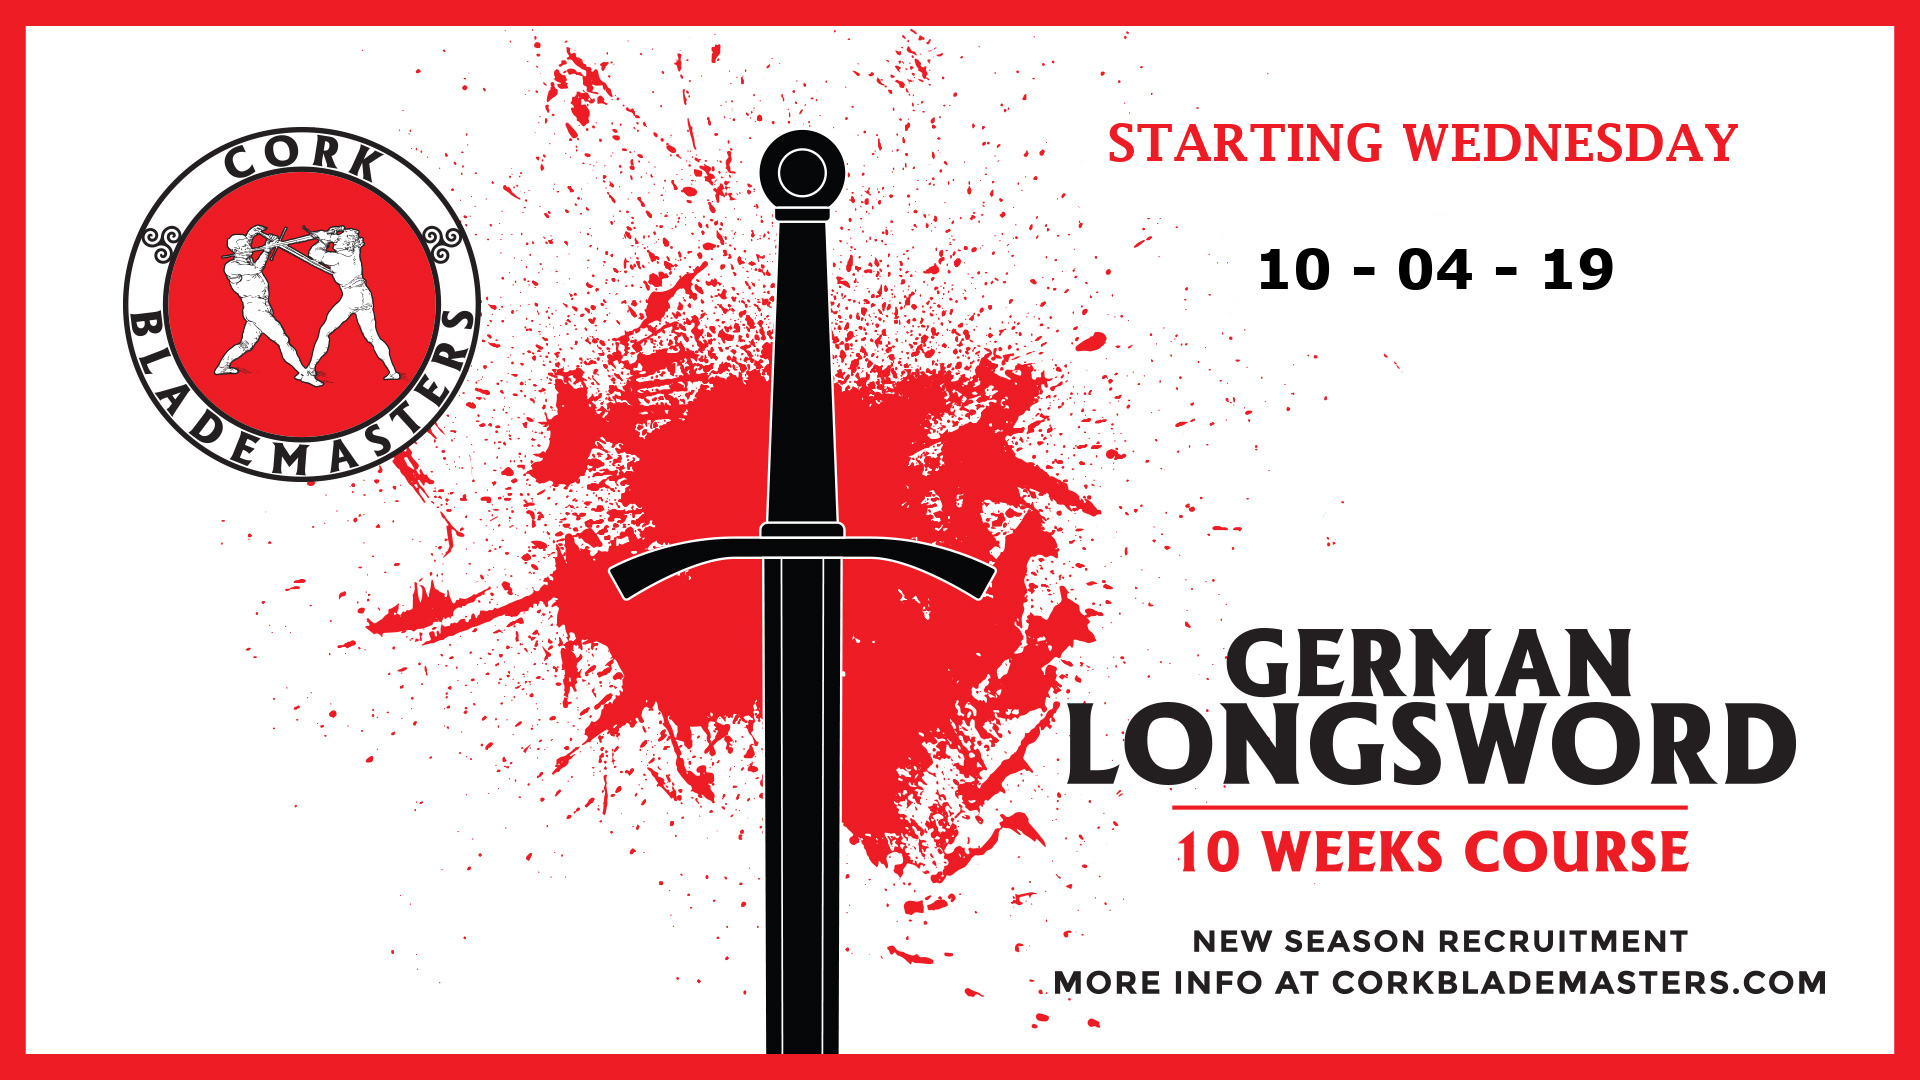 German Longsword Course starting tomorrow!